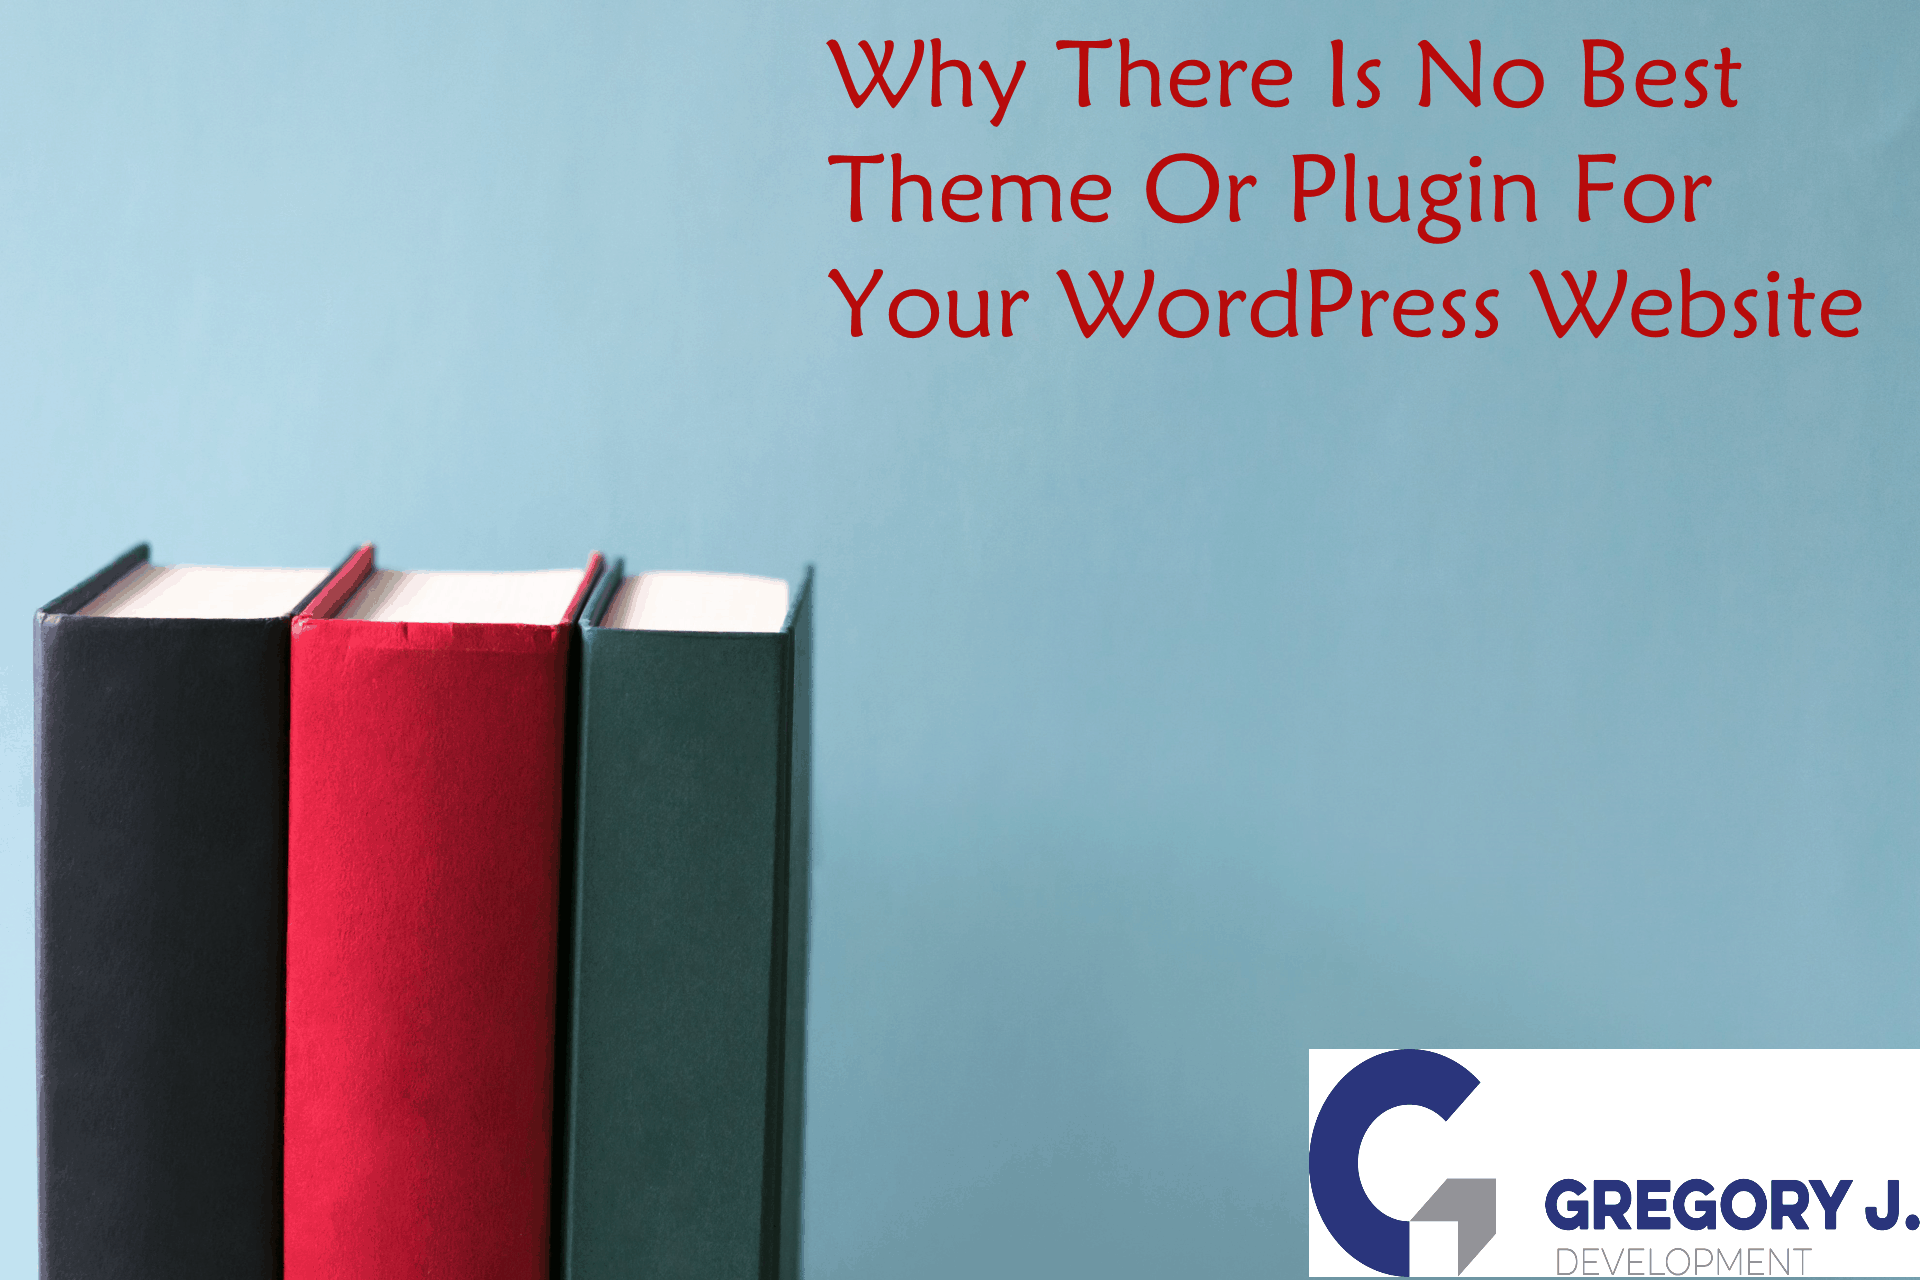 Why There Is No Best Theme Or Plugin For Your WordPress Website